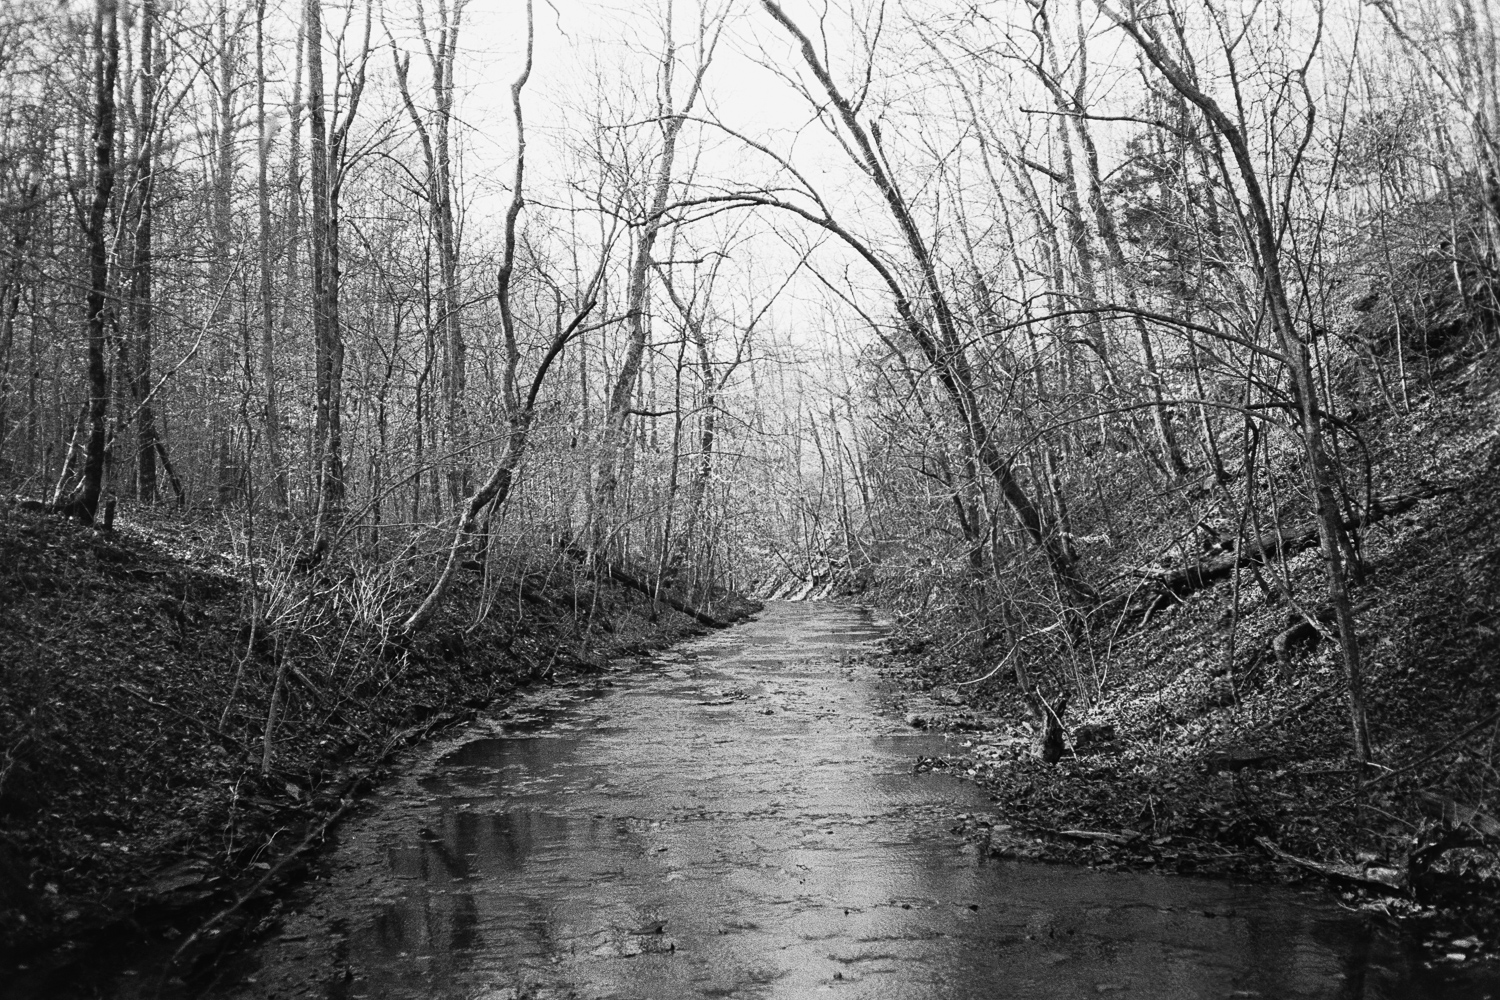 ^ A chill afternoon spent on the creek at Beaman Park.